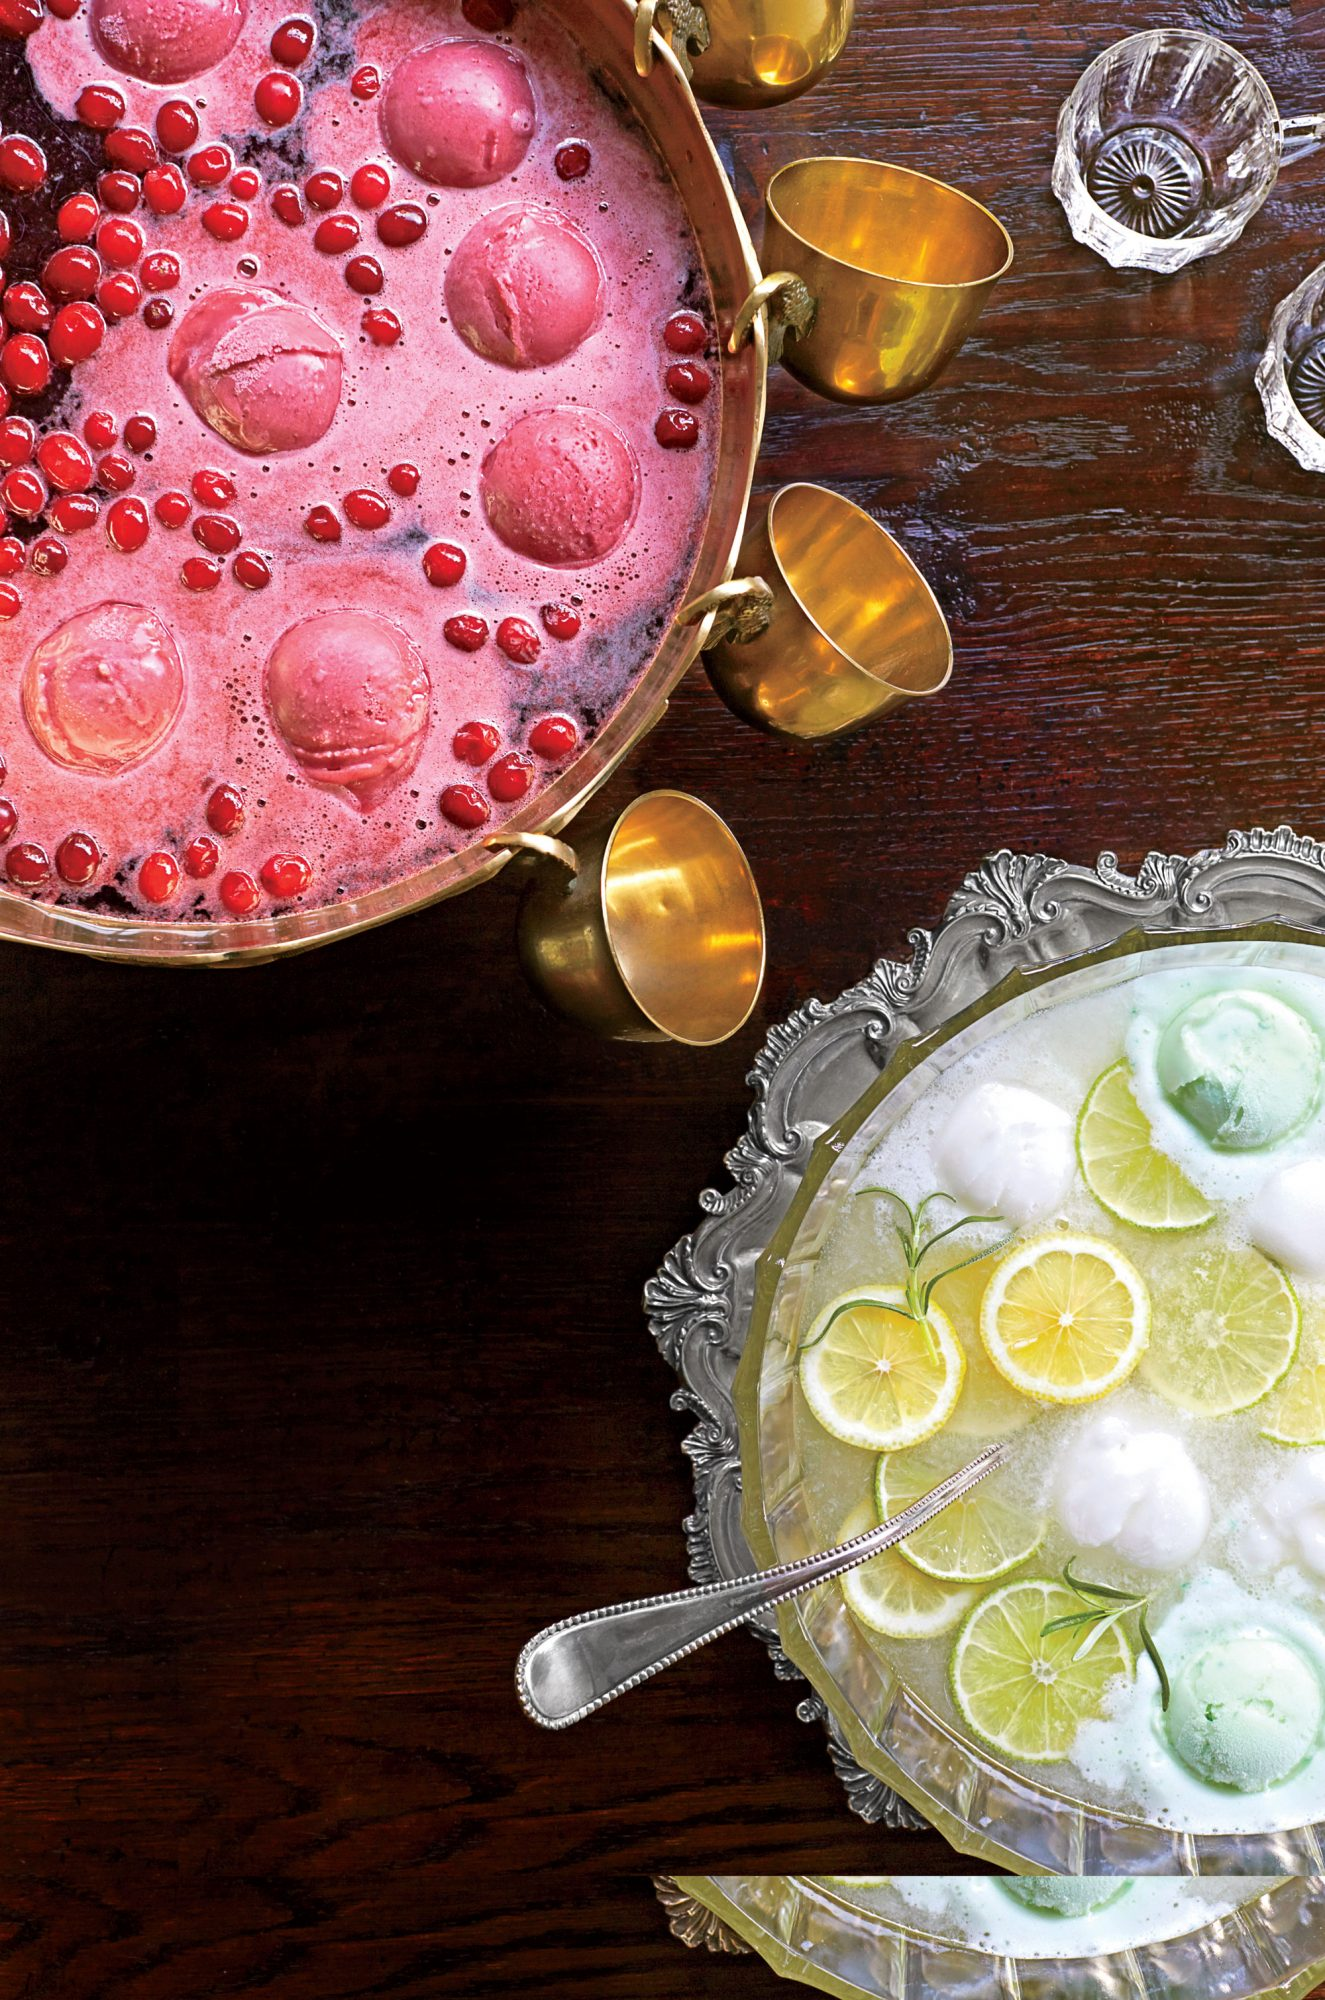 15 Refreshing Non-Alcoholic Punch Recipes That Everyone Will Love